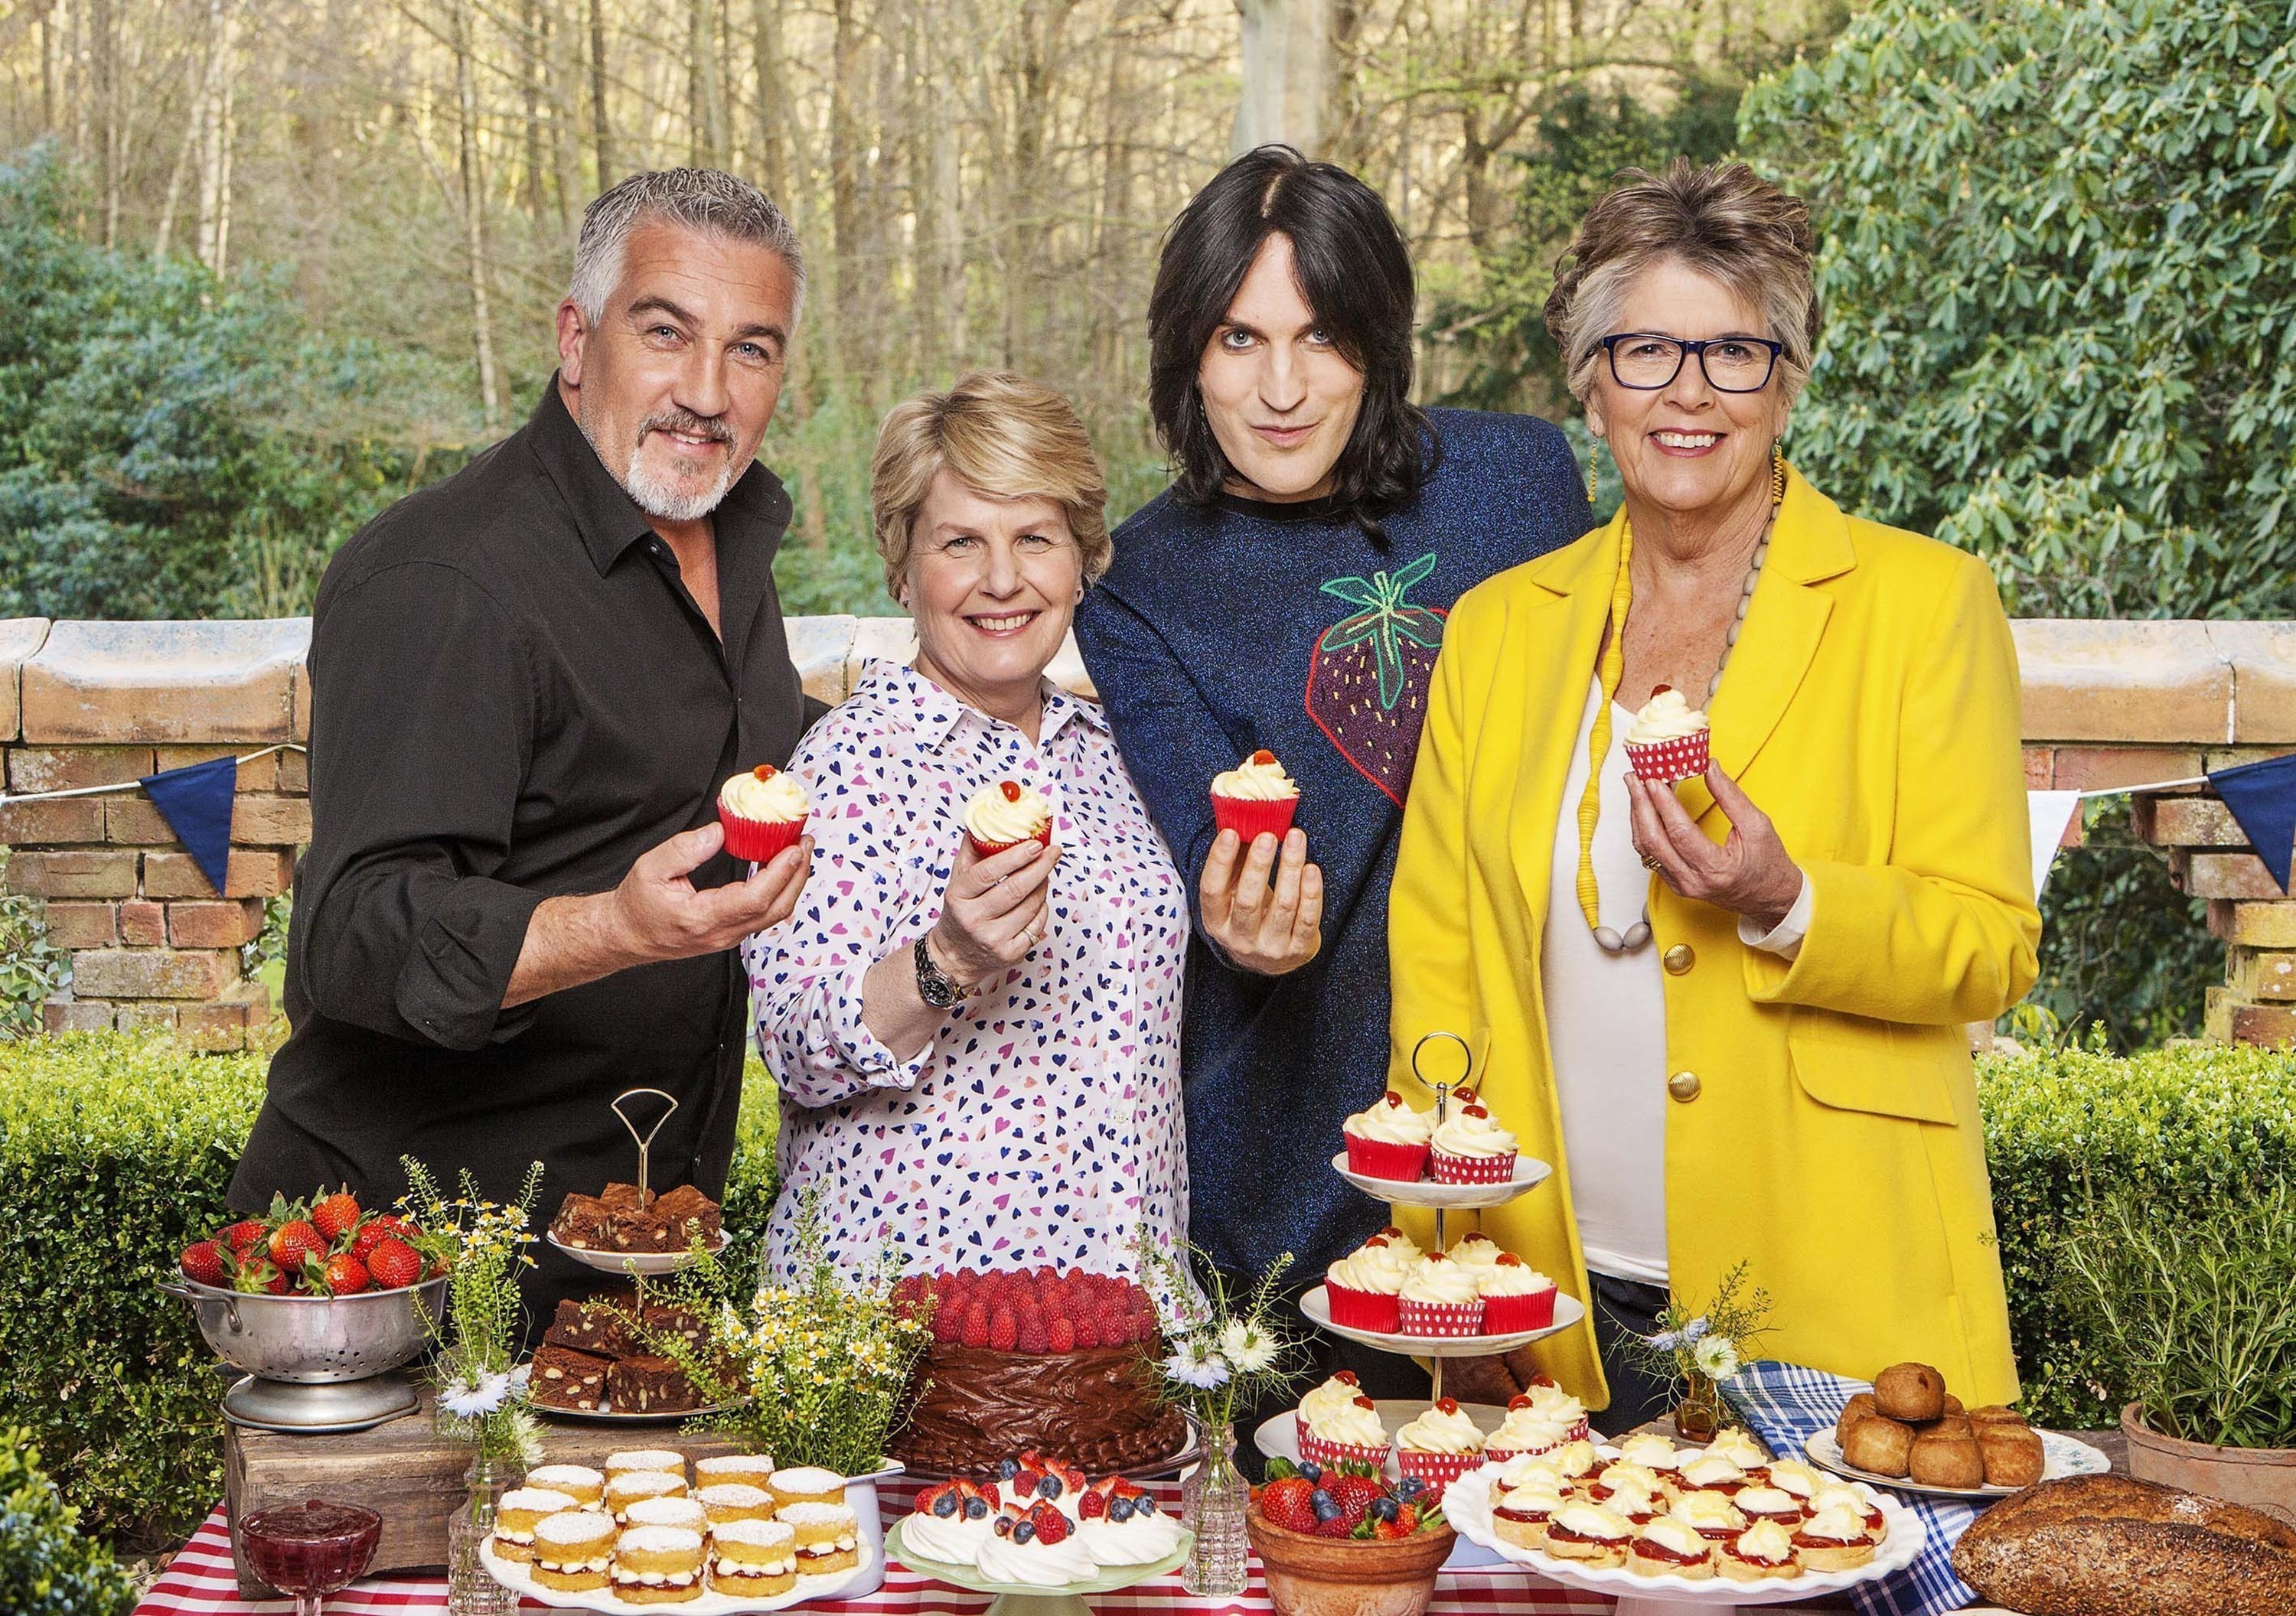 The Great British Bake Off stars Paul Hollywood, Sandi Toksvig, Noel Fielding and Prue Leith. (PA/Love Productions / Channel 4 / Mark Bourdillon.)